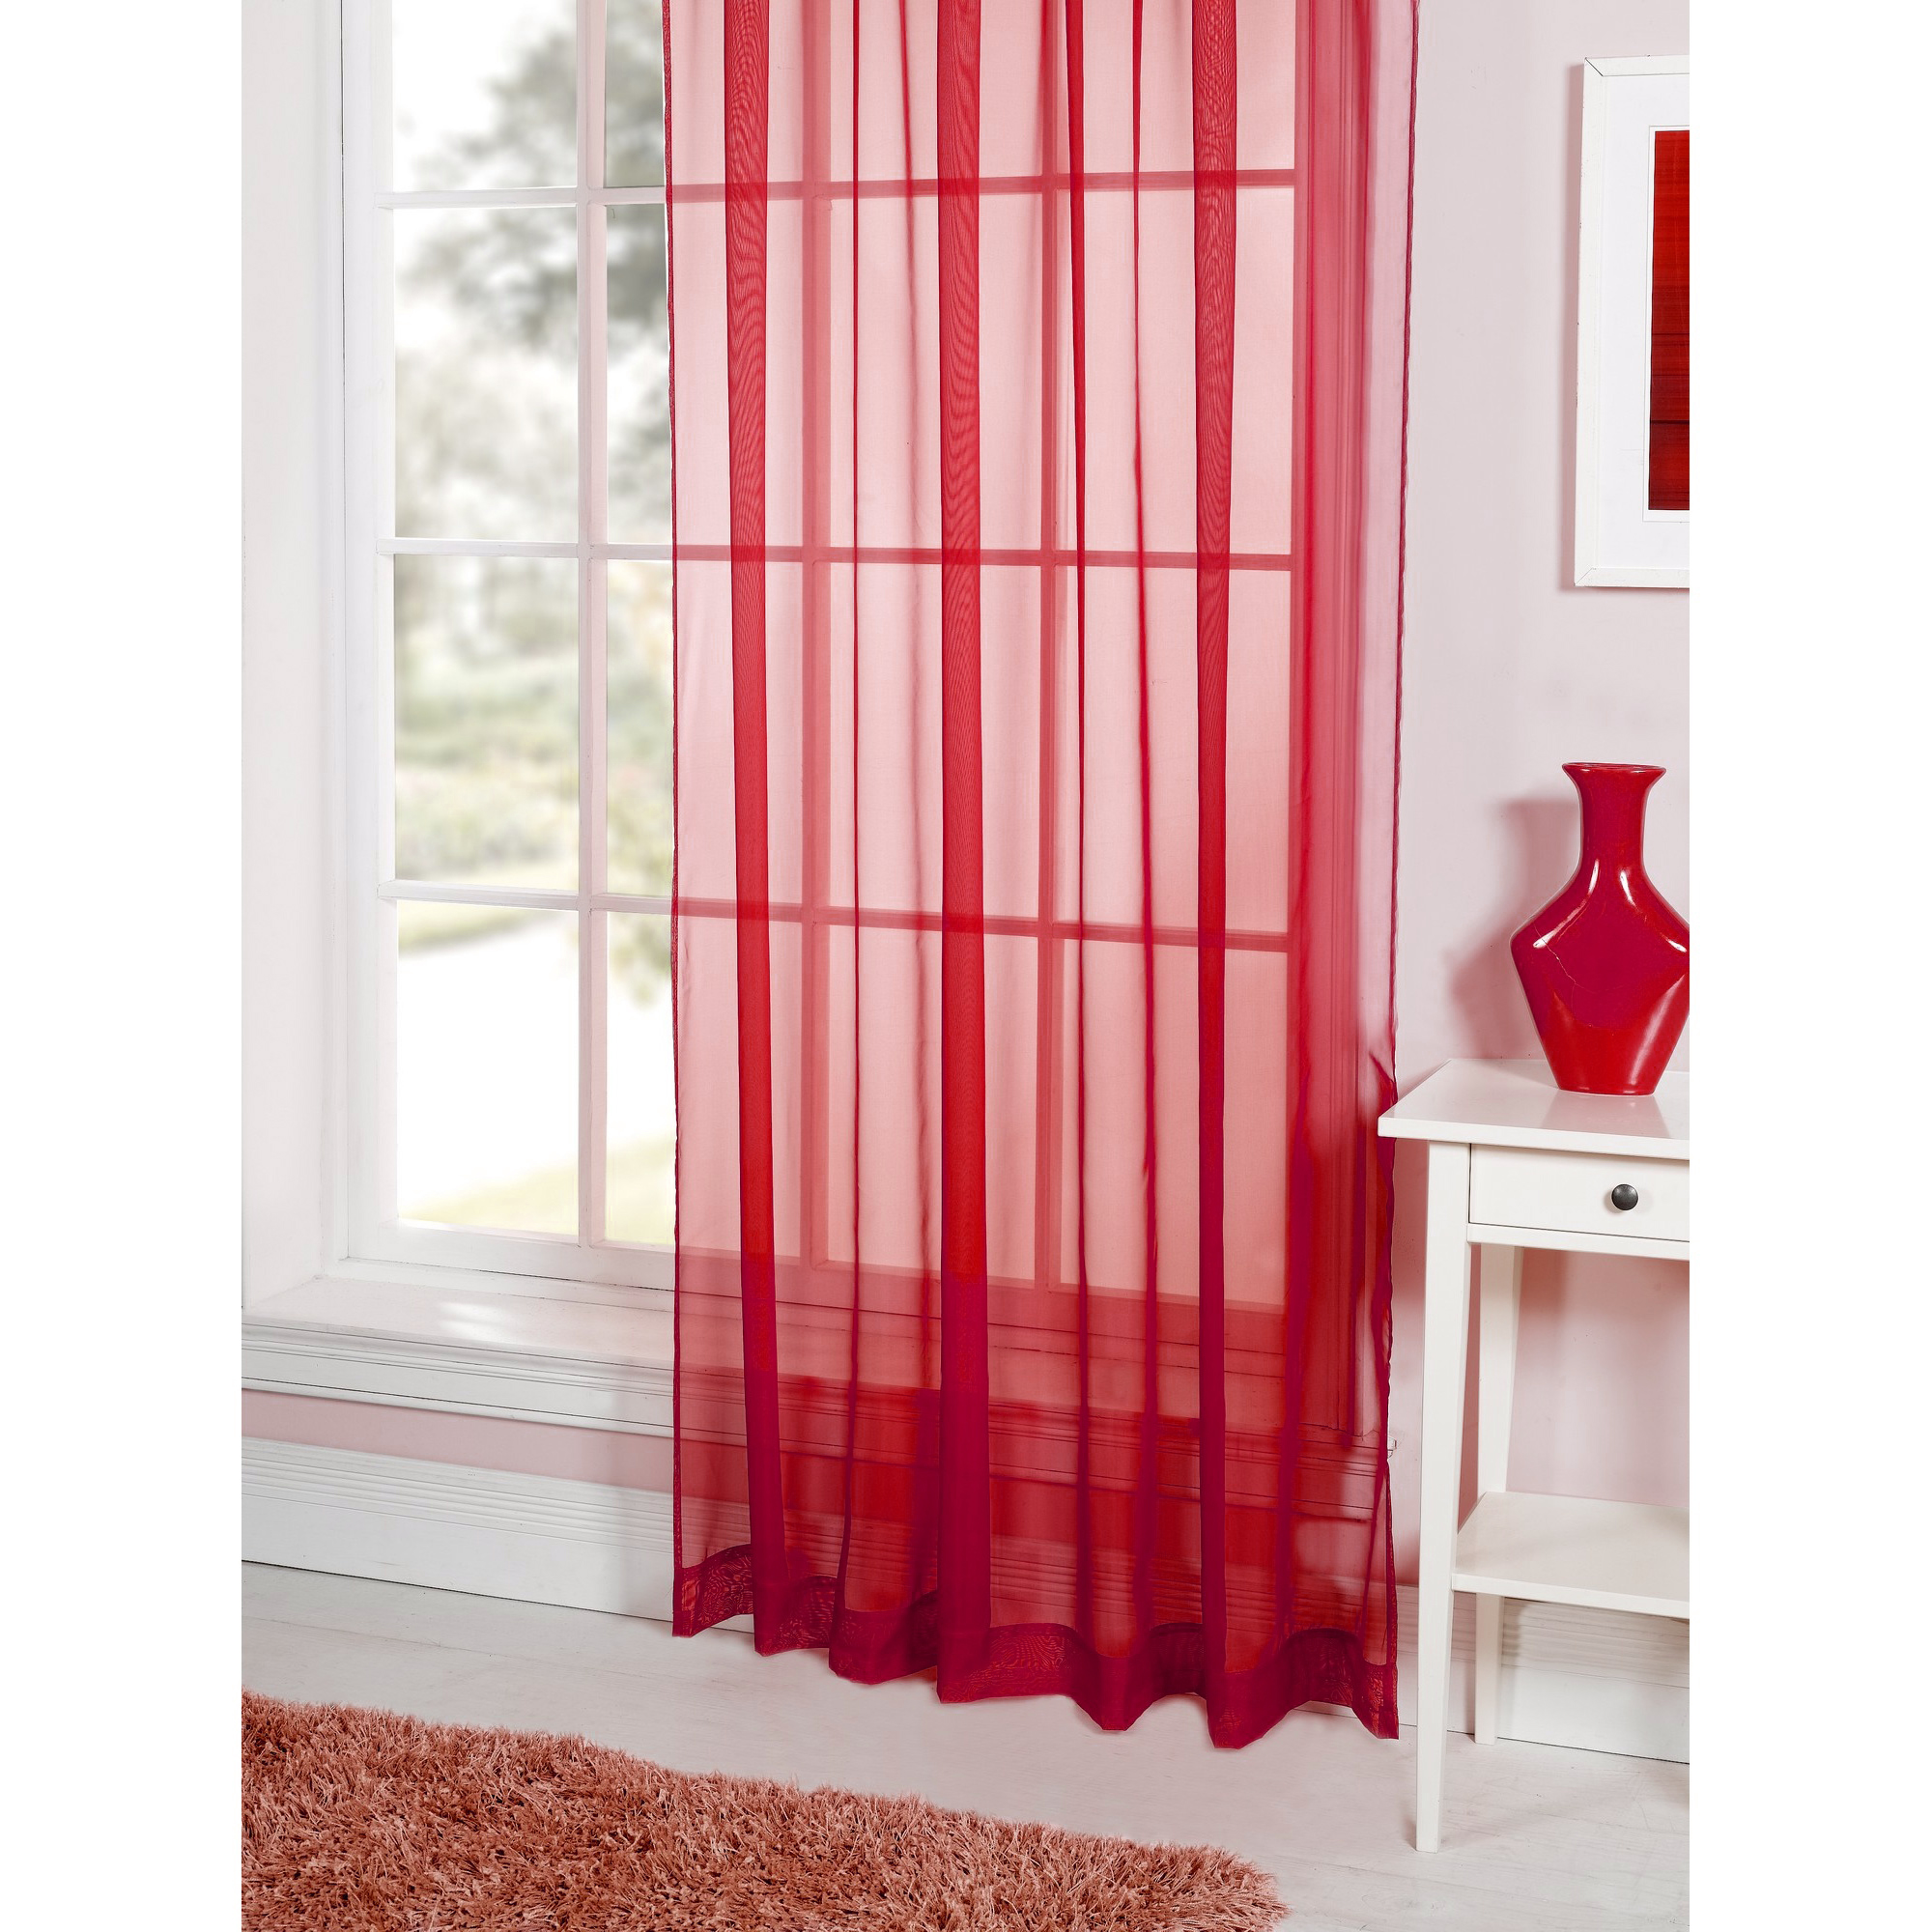 Crushed sheer voile curtains